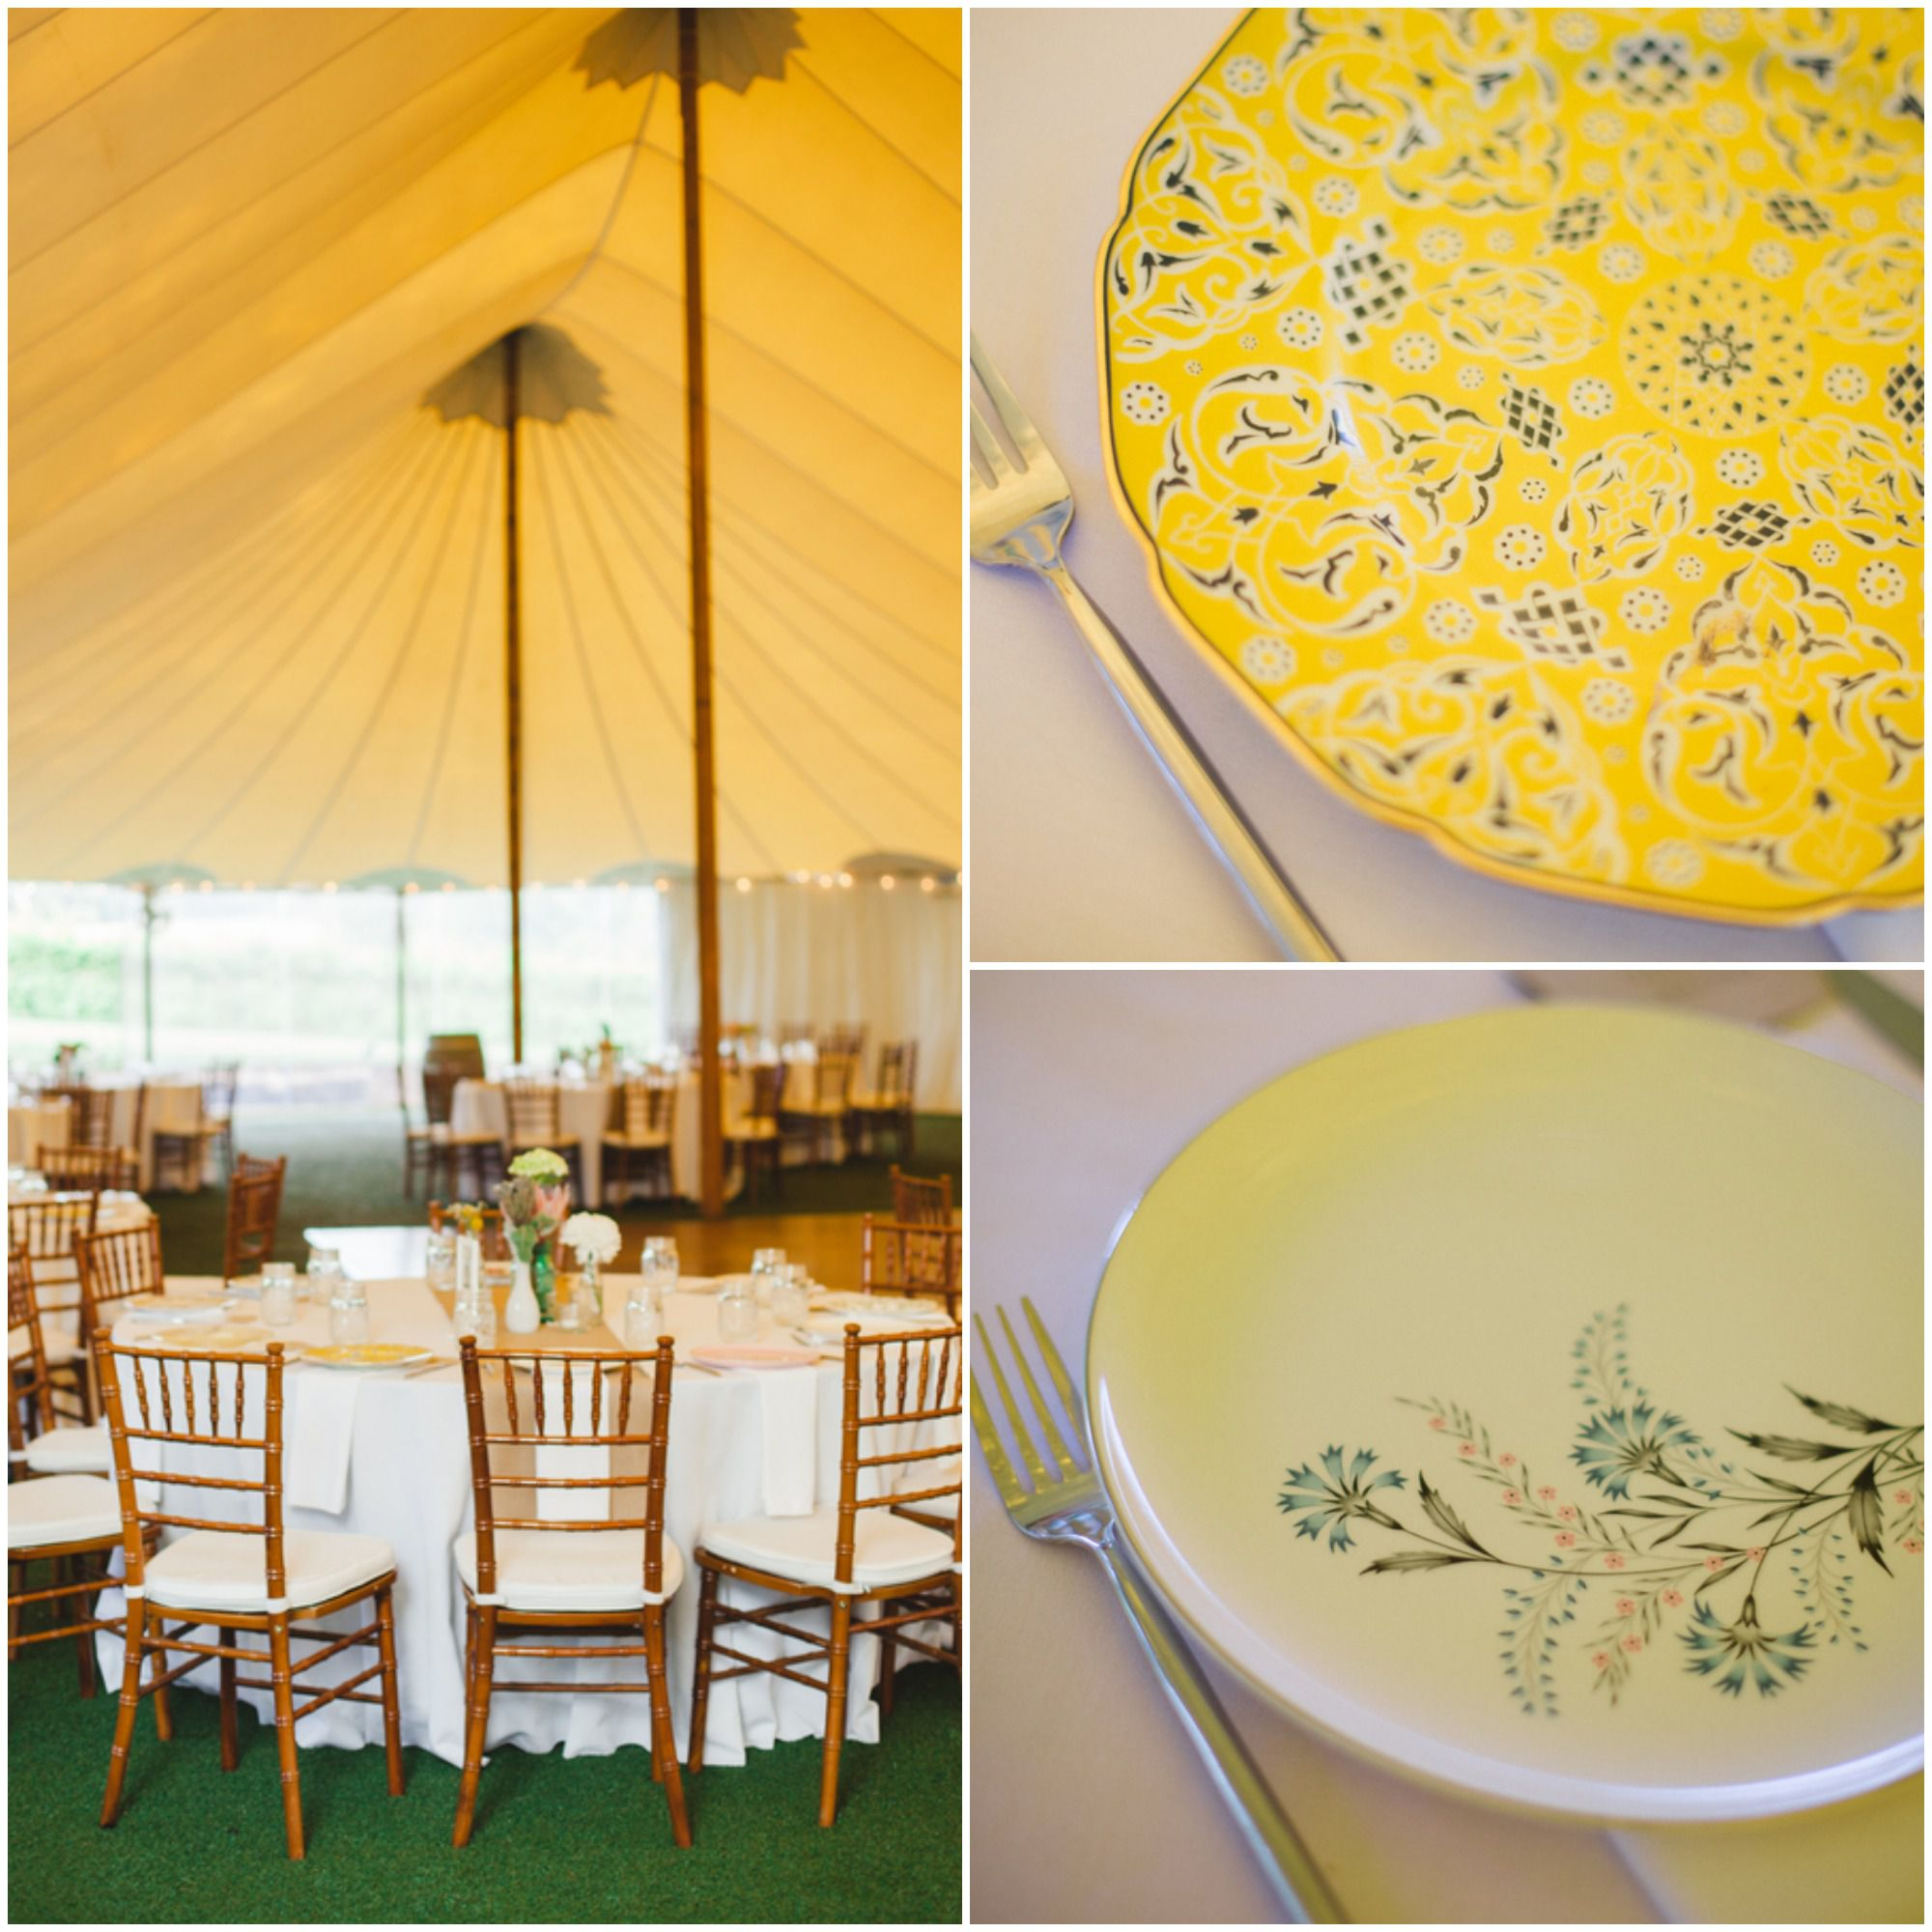 Southern Wedding Reception Food: A Vintage Style Vineyard Wedding